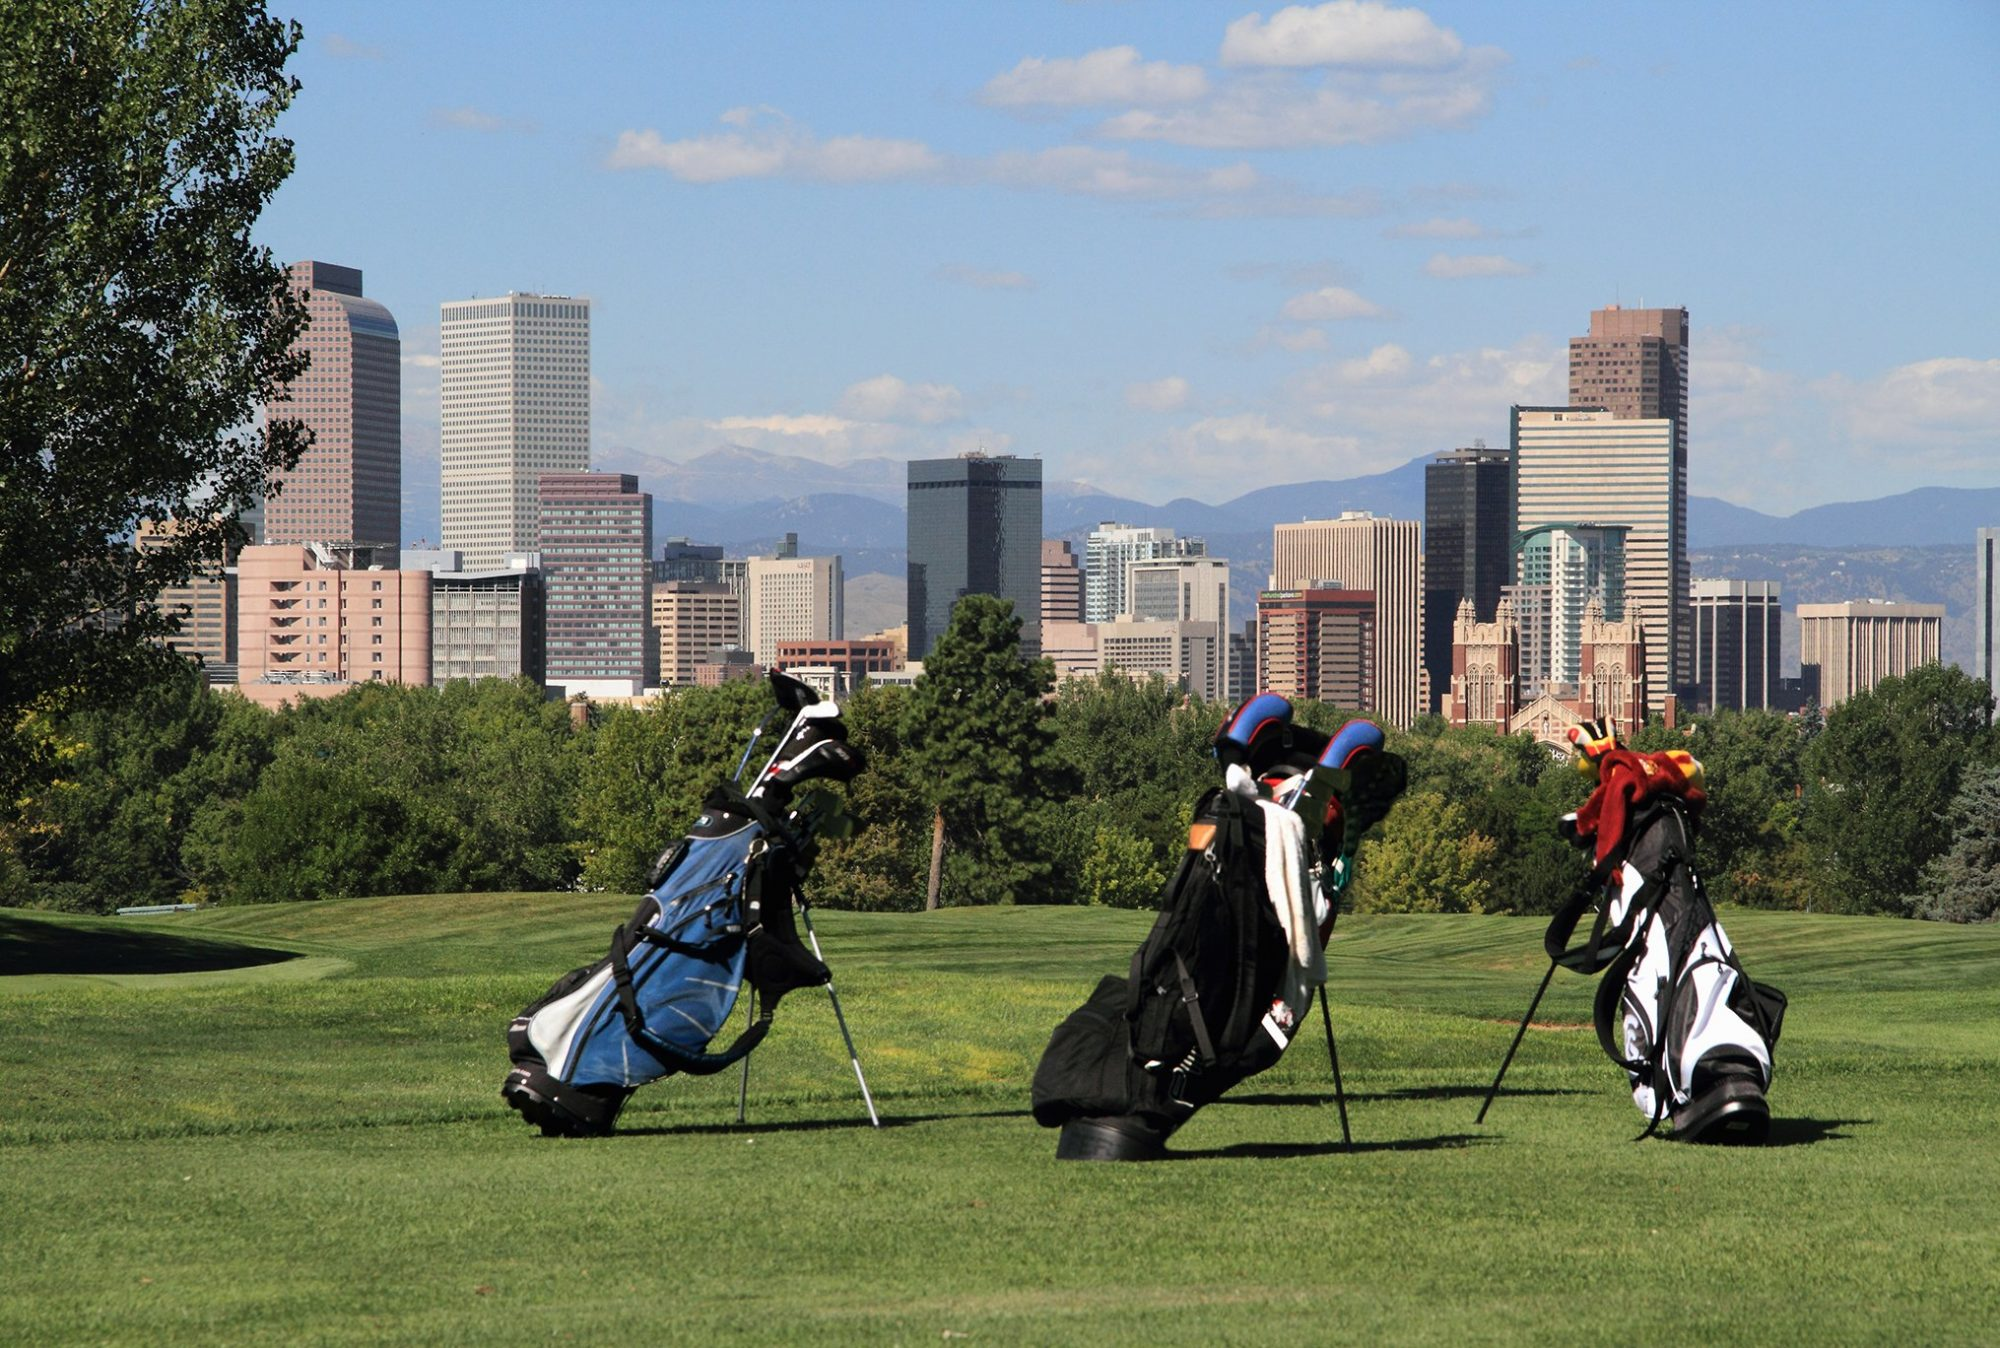 City Park Golf Course with downtown skyline and Rocky Mountains behind, Denver, Colorado.